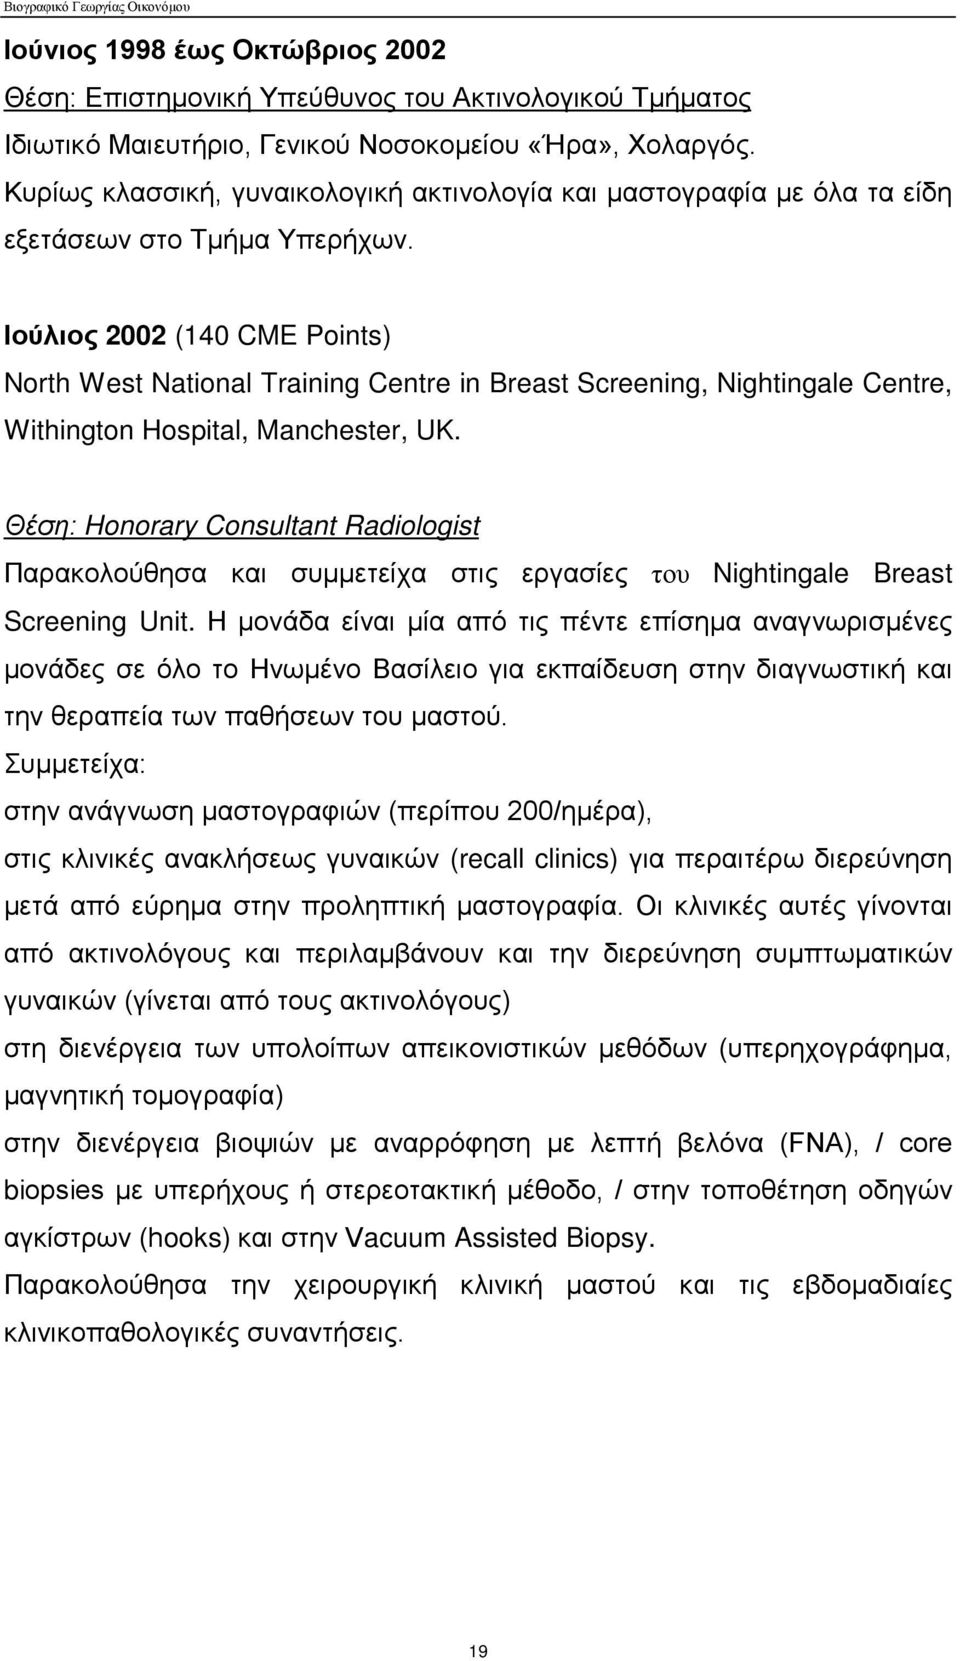 Ιούλιος 2002 (140 CME Points) North West National Training Centre in Breast Screening, Nightingale Centre, Withington Hospital, Manchester, UK.